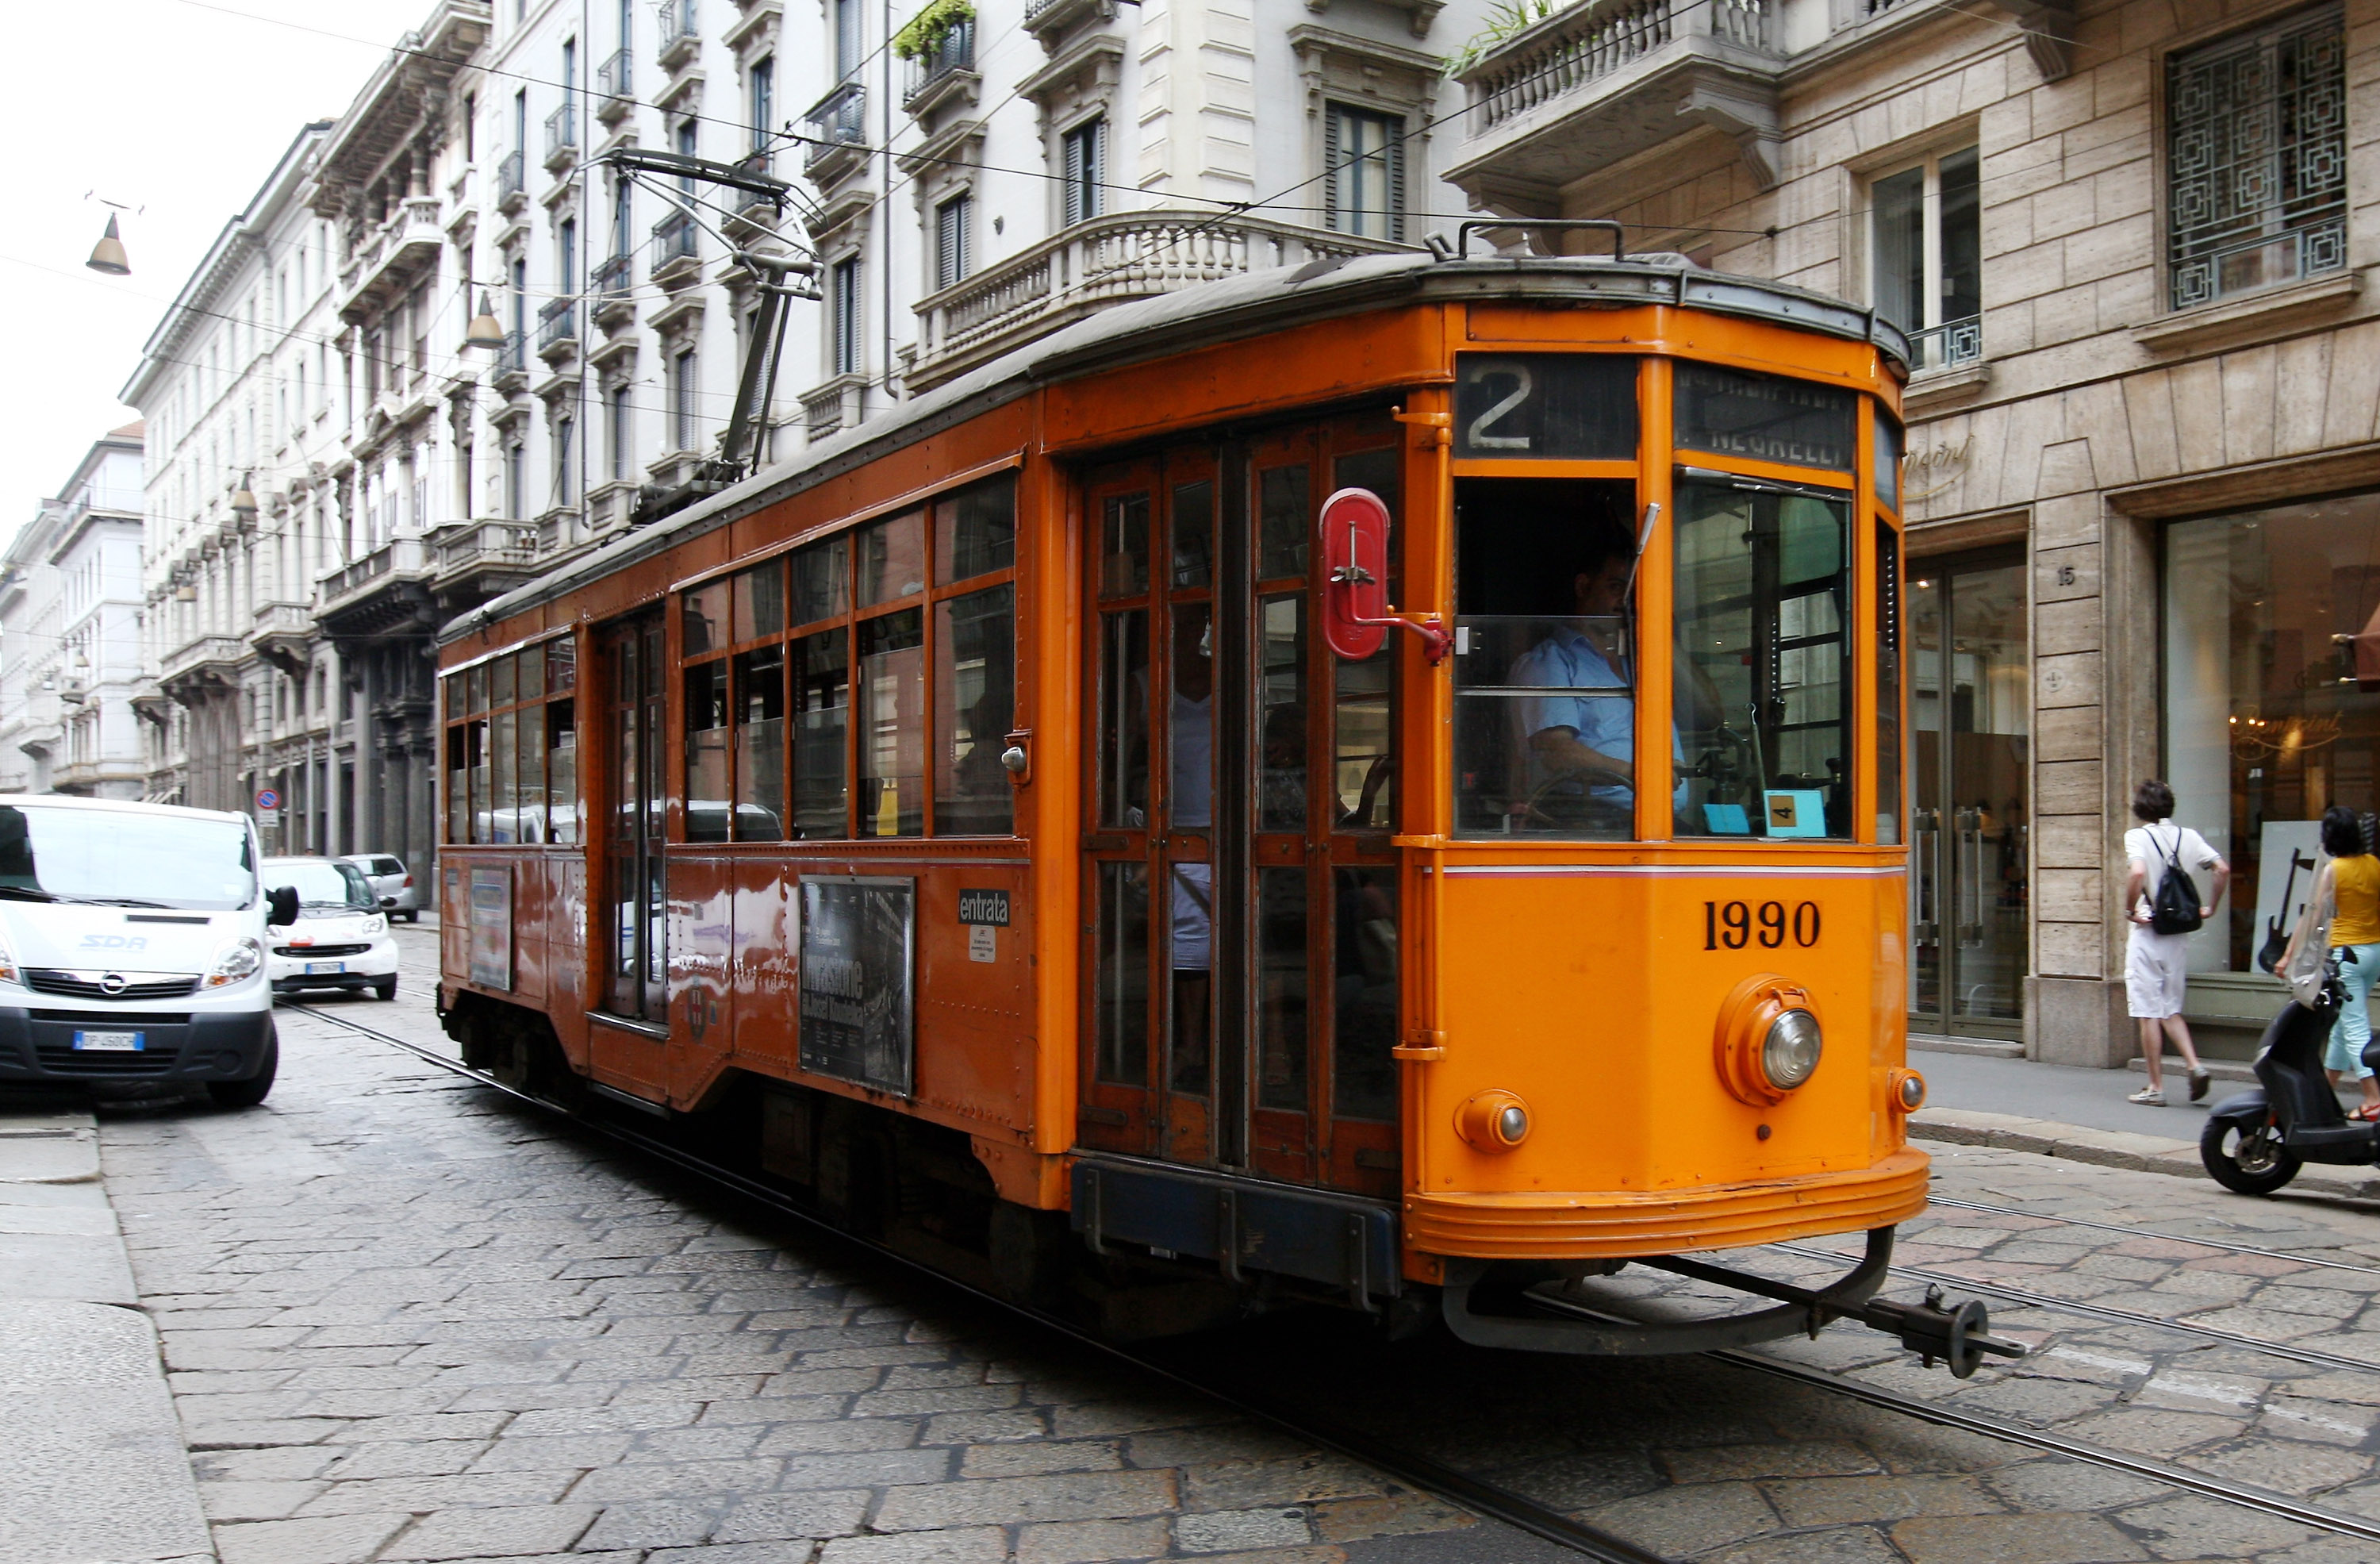 So are trams really better than buses? | CityMetric